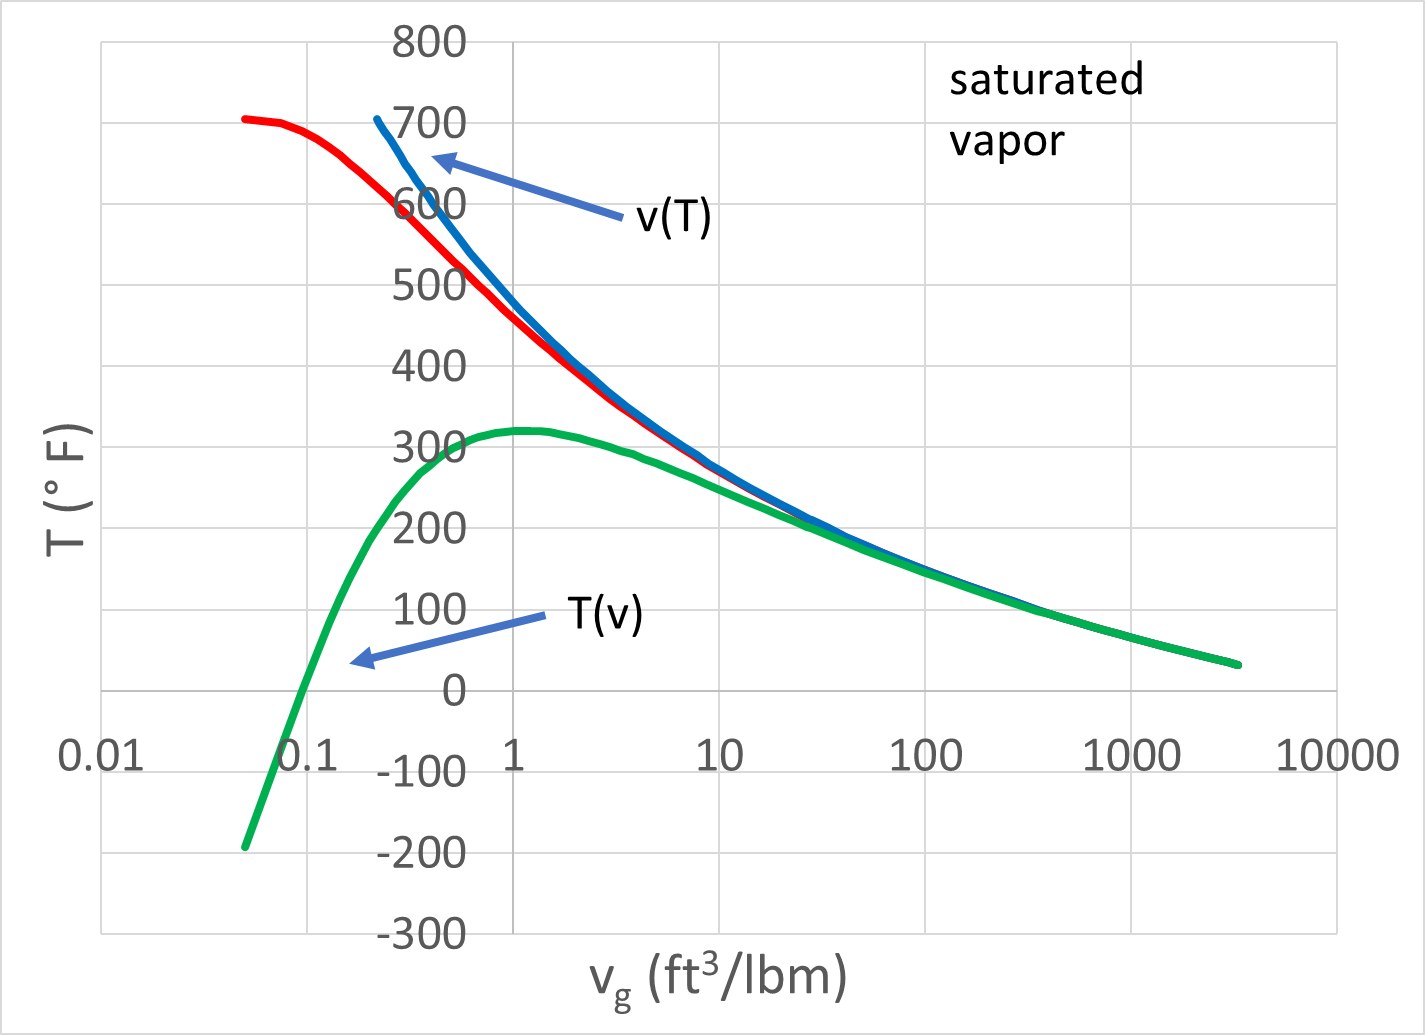 hight resolution of the red line represents the saturated vapor line the right side of the steam dome the blue line represents the calculation of v from values for